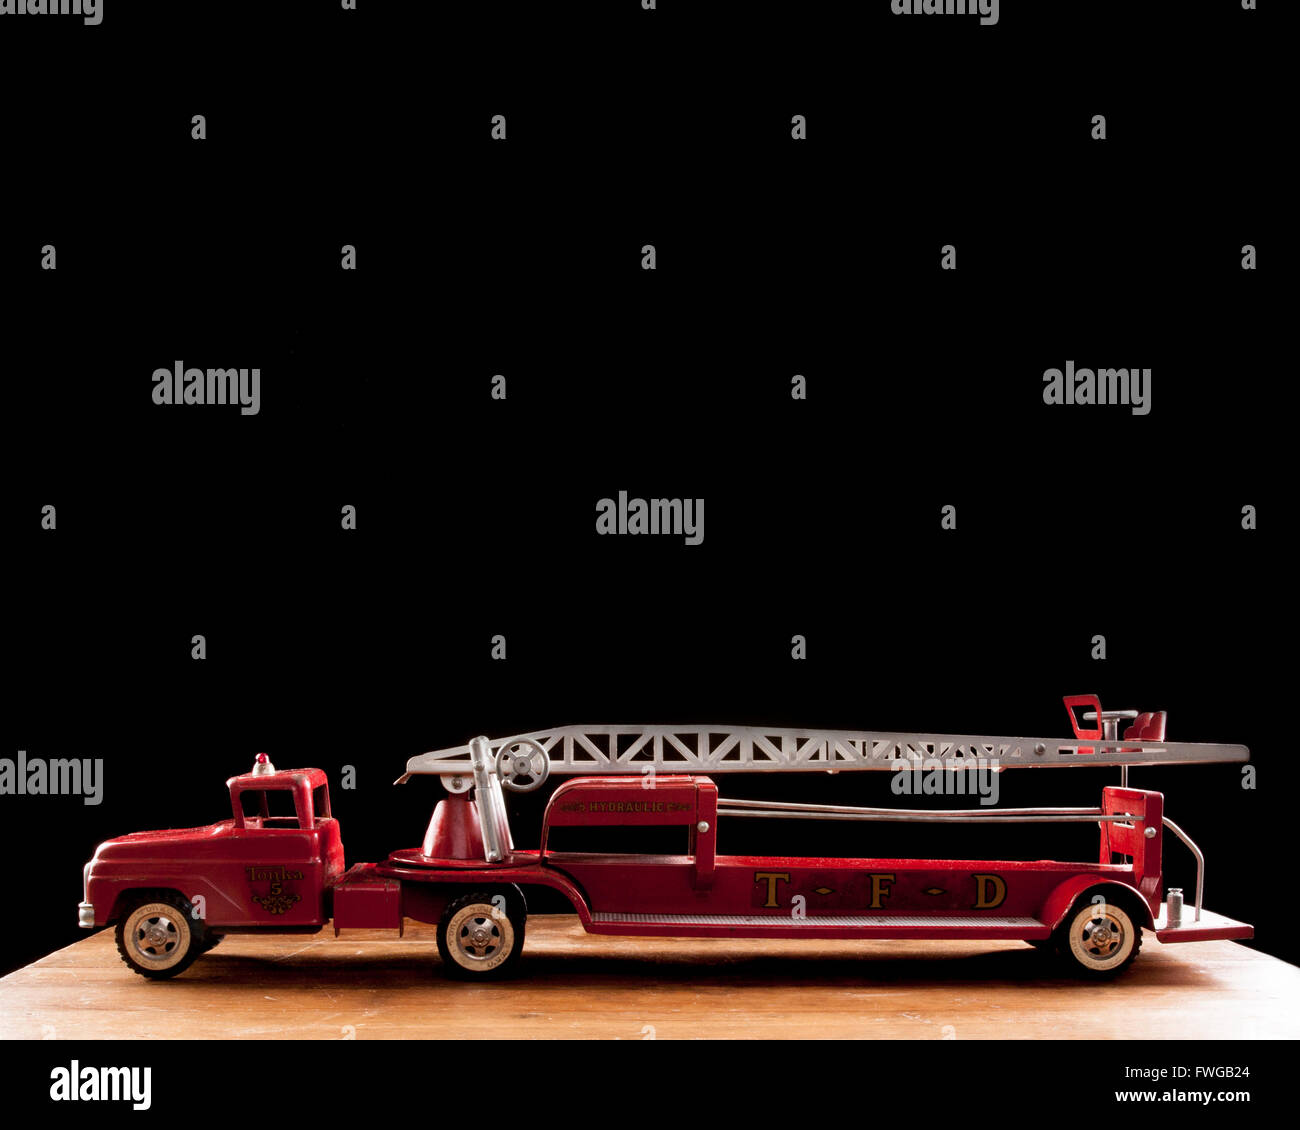 Tonka Fire truck TFD metal toy collectible - Stock Image